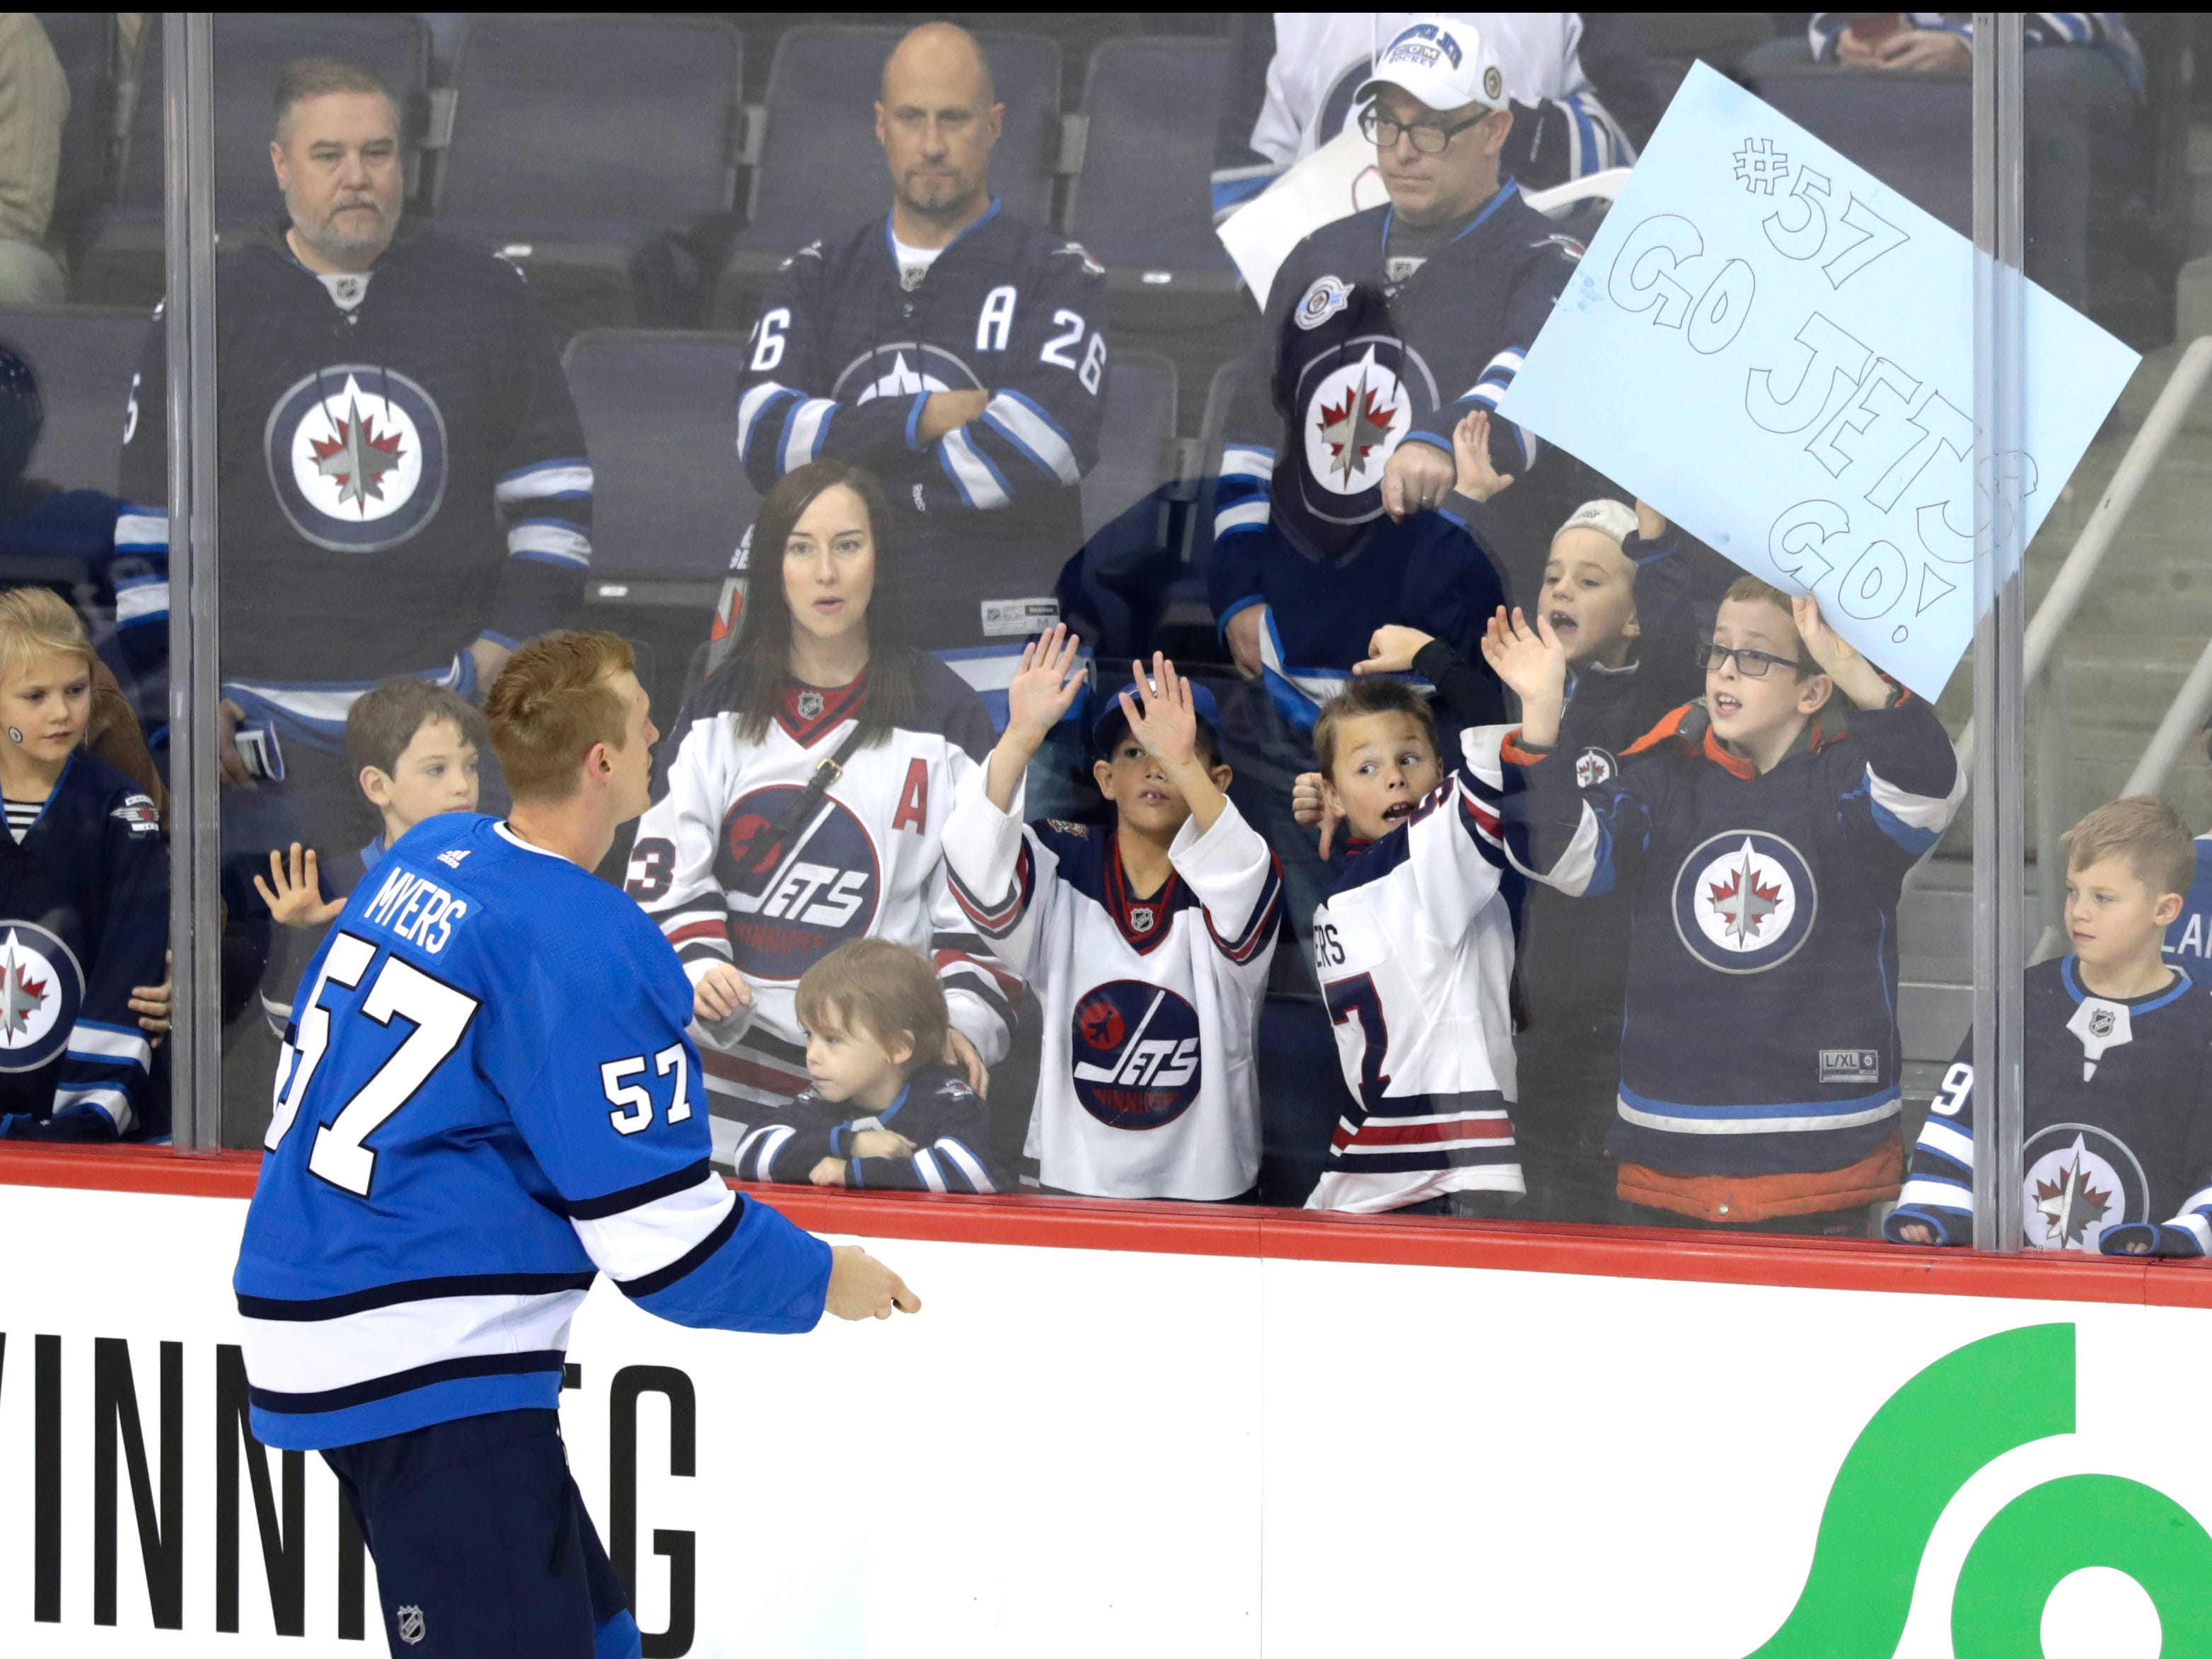 Oct 20, 2018; Winnipeg, Manitoba, CAN; Winnipeg Jets defenseman Tyler Myers (57) tosses a puck to fans before a game against Arizona Coyotes at Bell MTS Place. Mandatory Credit: James Carey Lauder-USA TODAY Sports